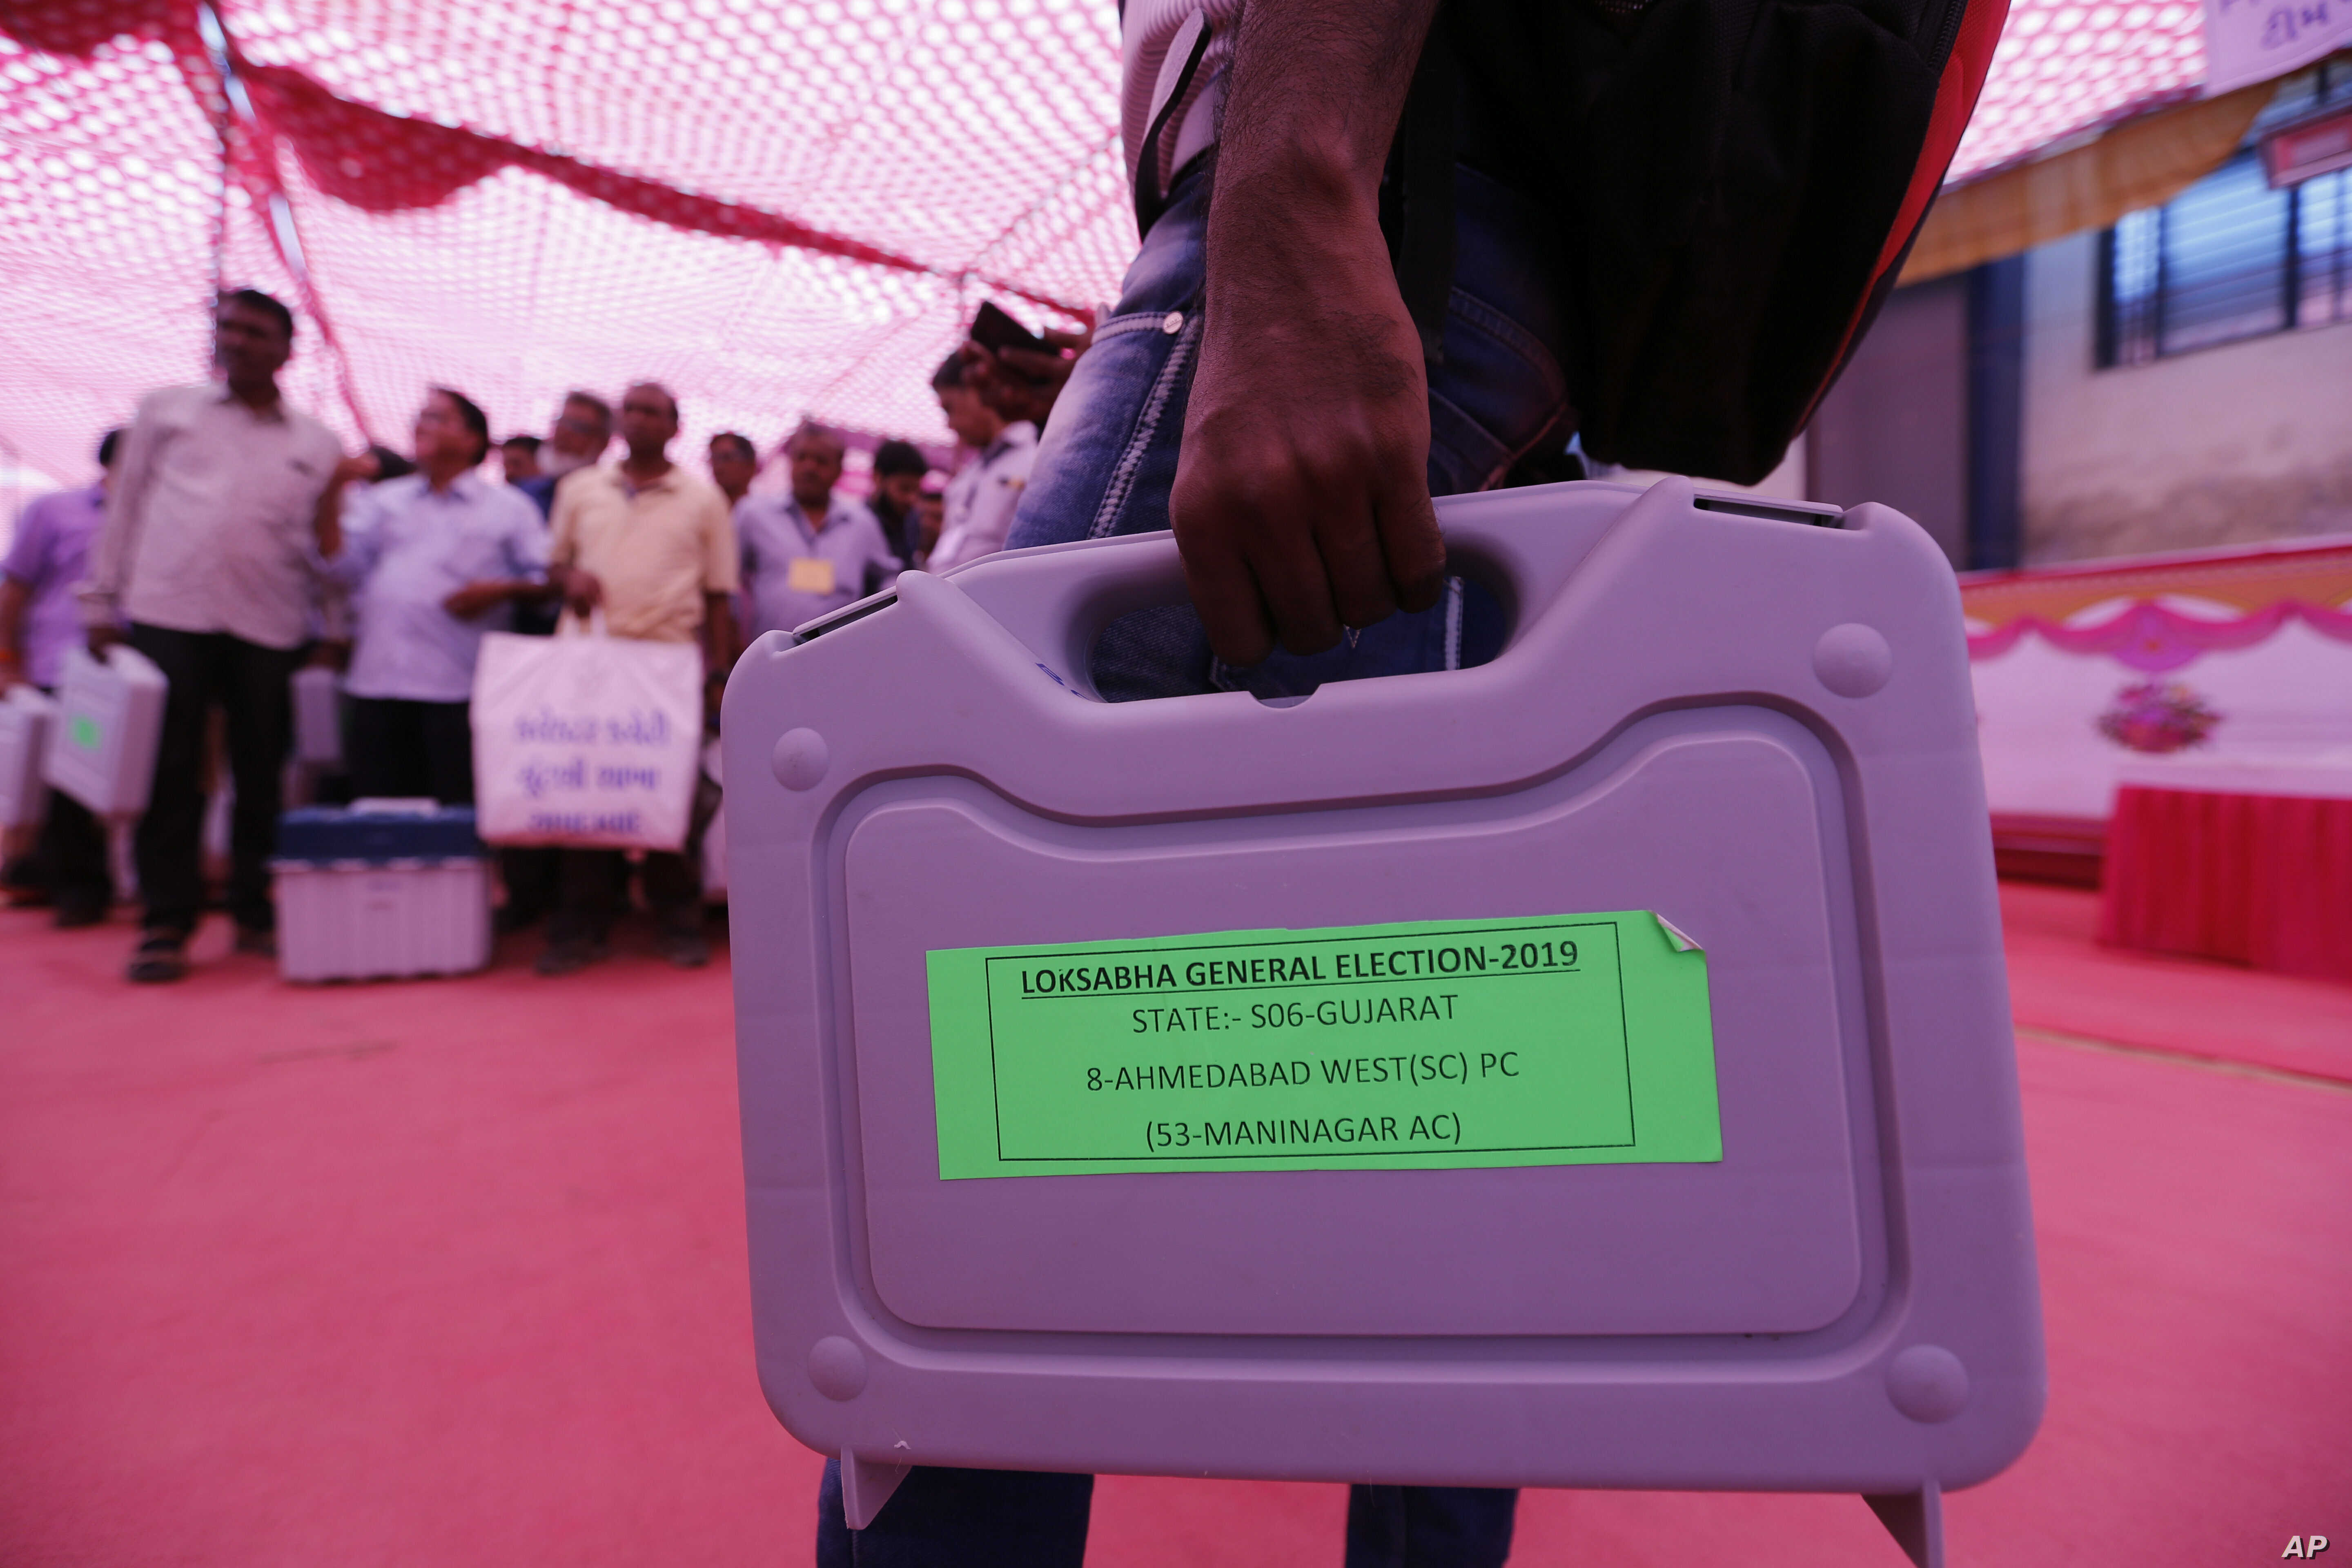 Officials on election duty carry electronic voting machines ahead of the general election in Ahmadabad, India, April 22, 2019.